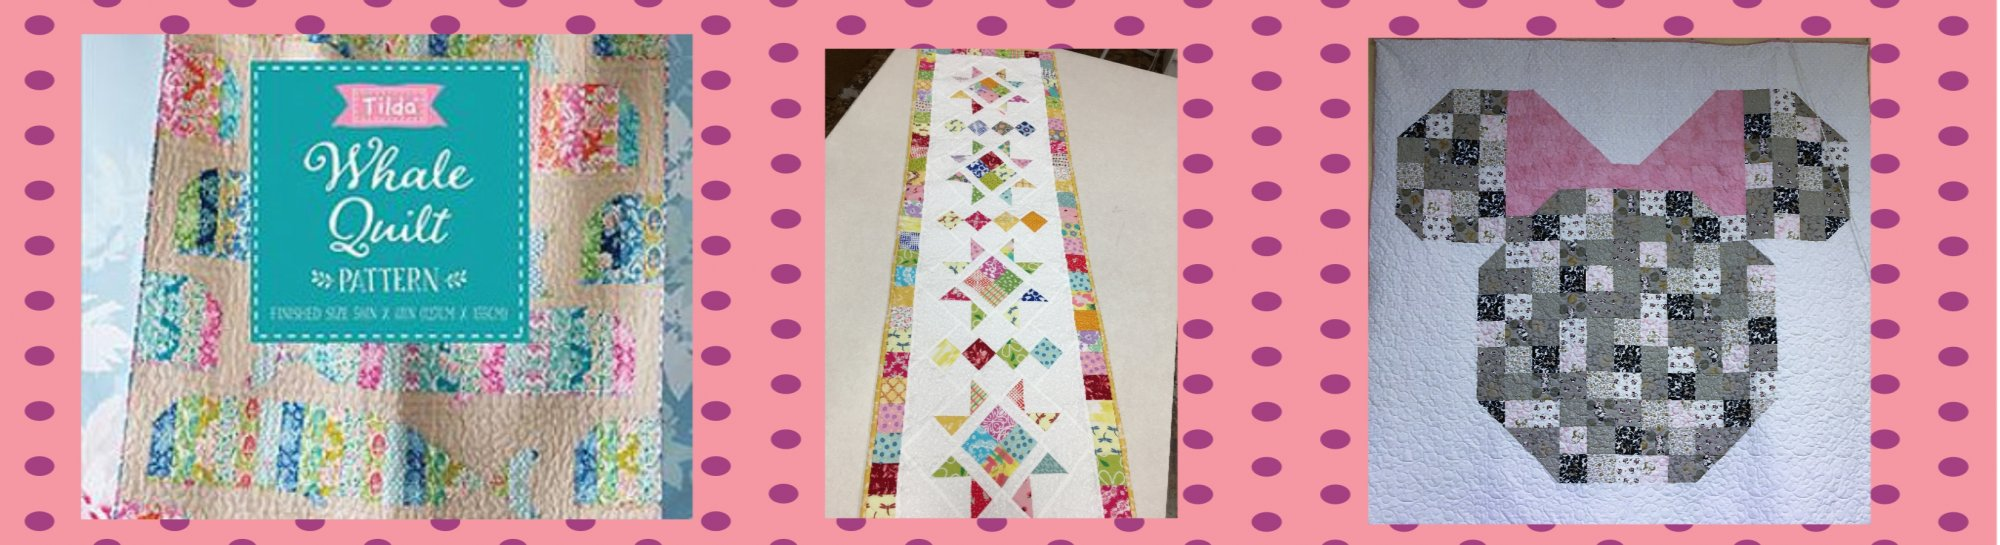 Regal Fabrics and Gifts image 23